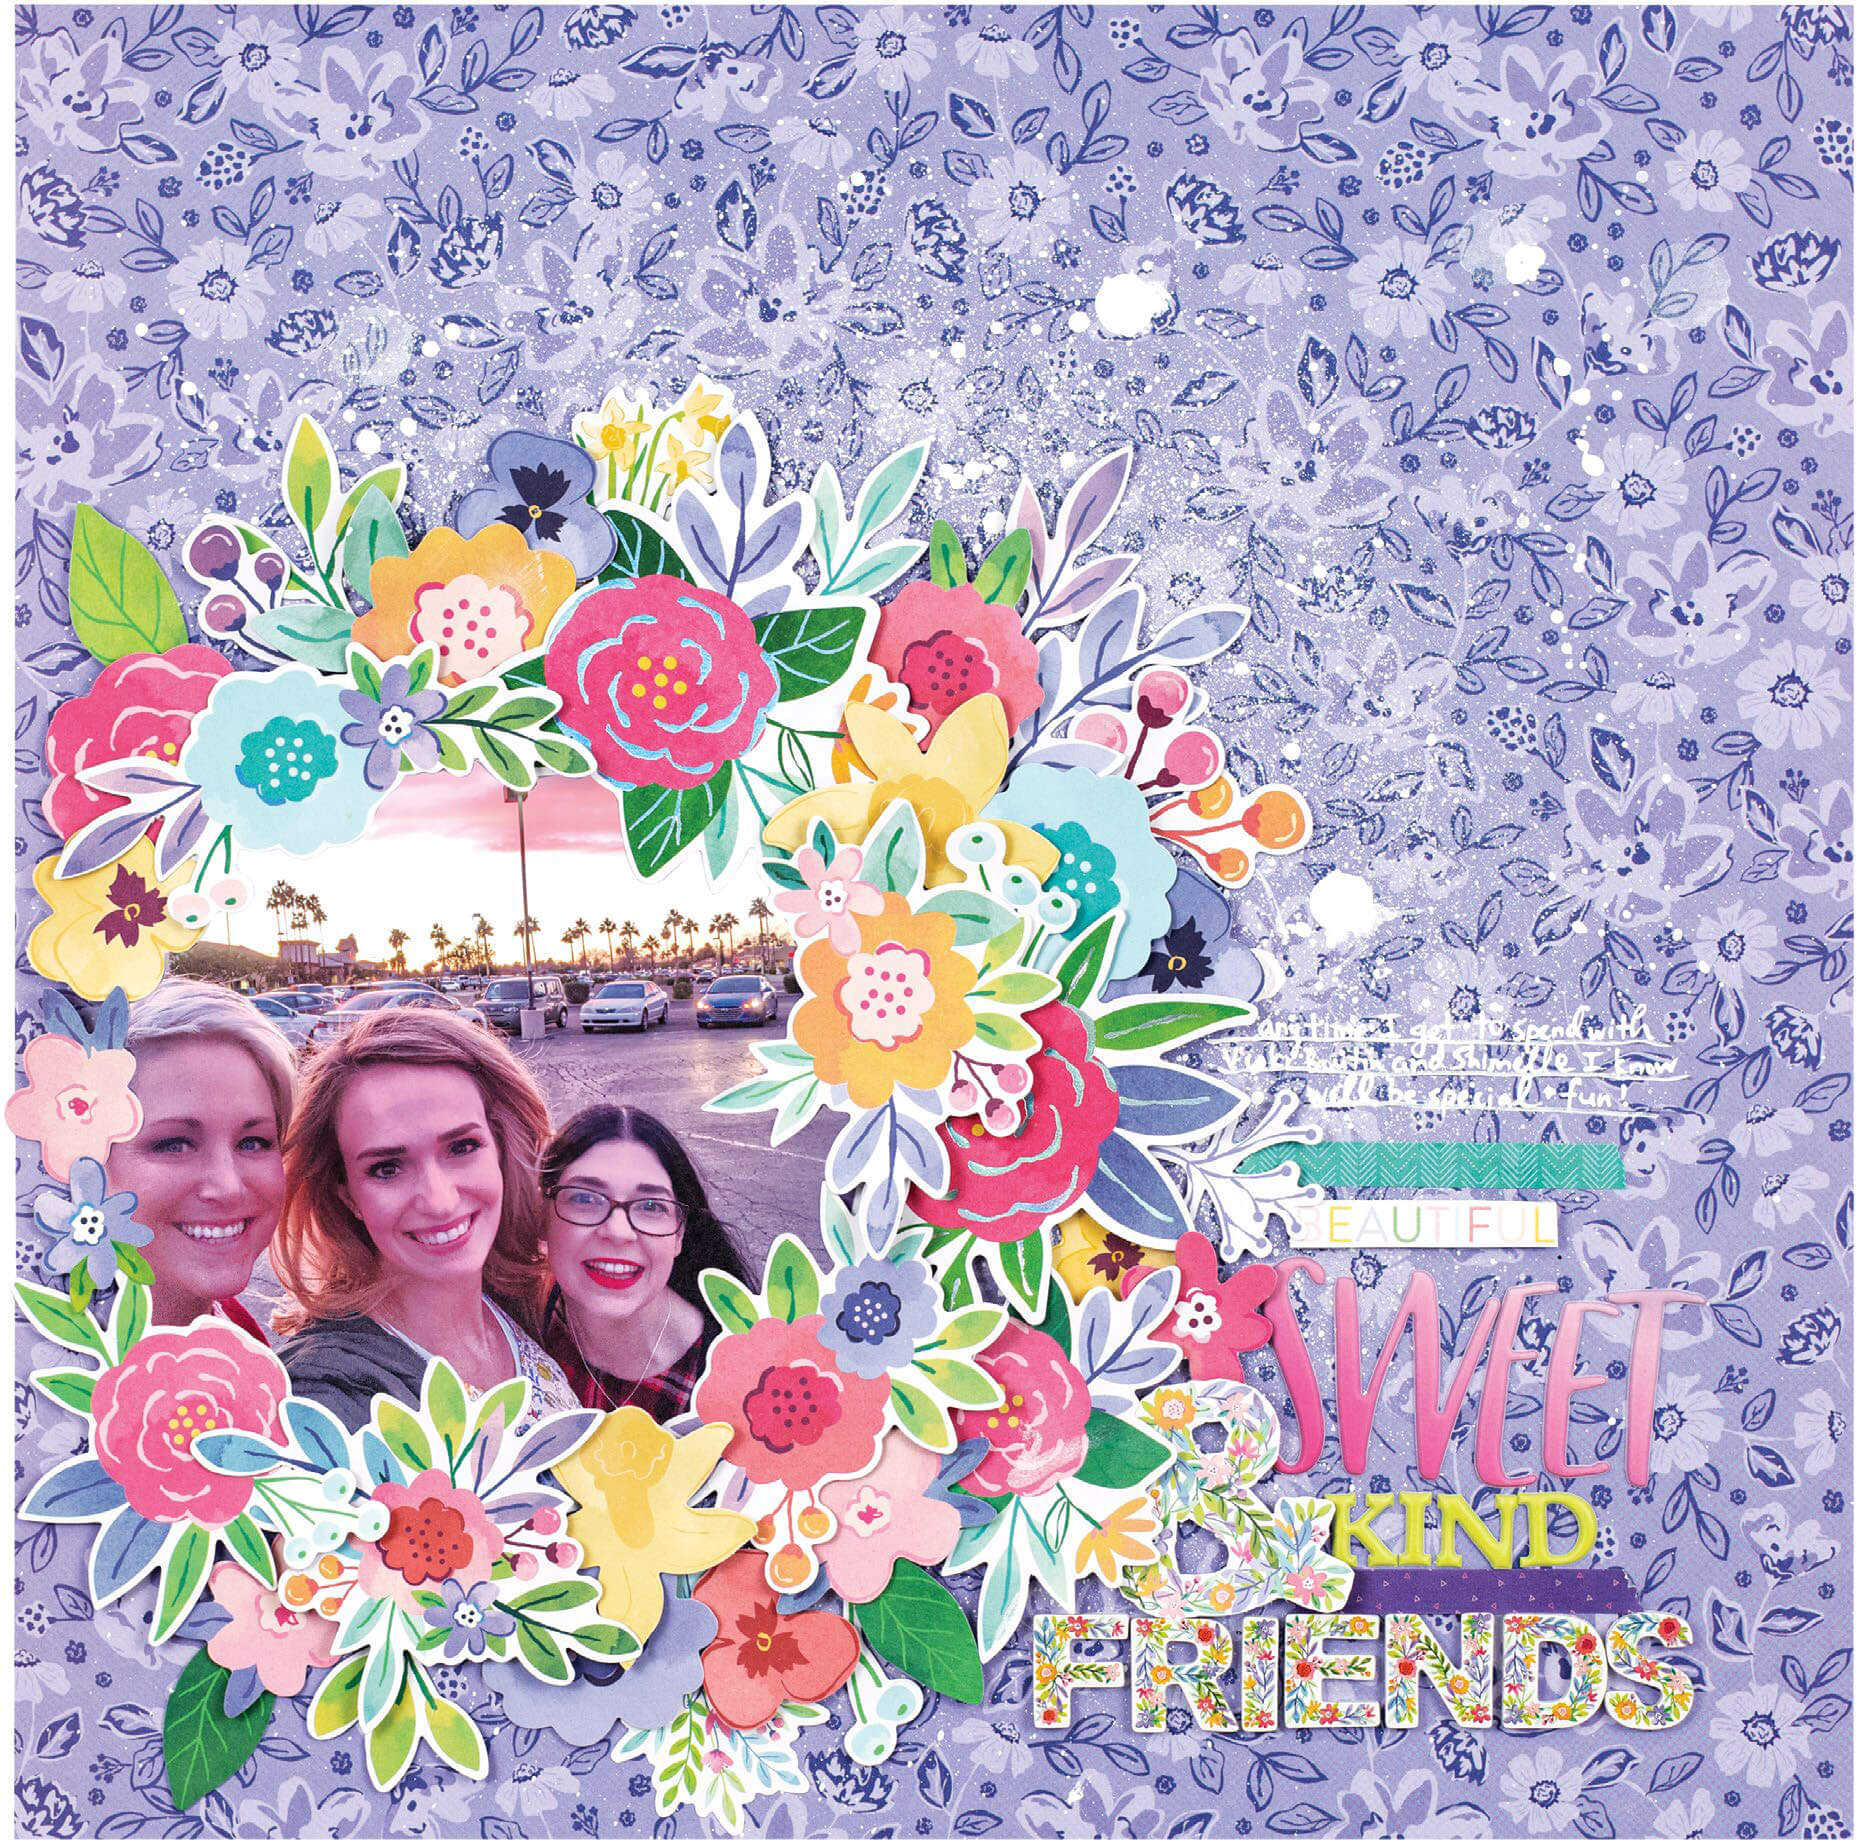 Scrapbook & Cards Today - Spring 2020 - Beautiful Sweet & Kinds Friends layout by Paige Evans